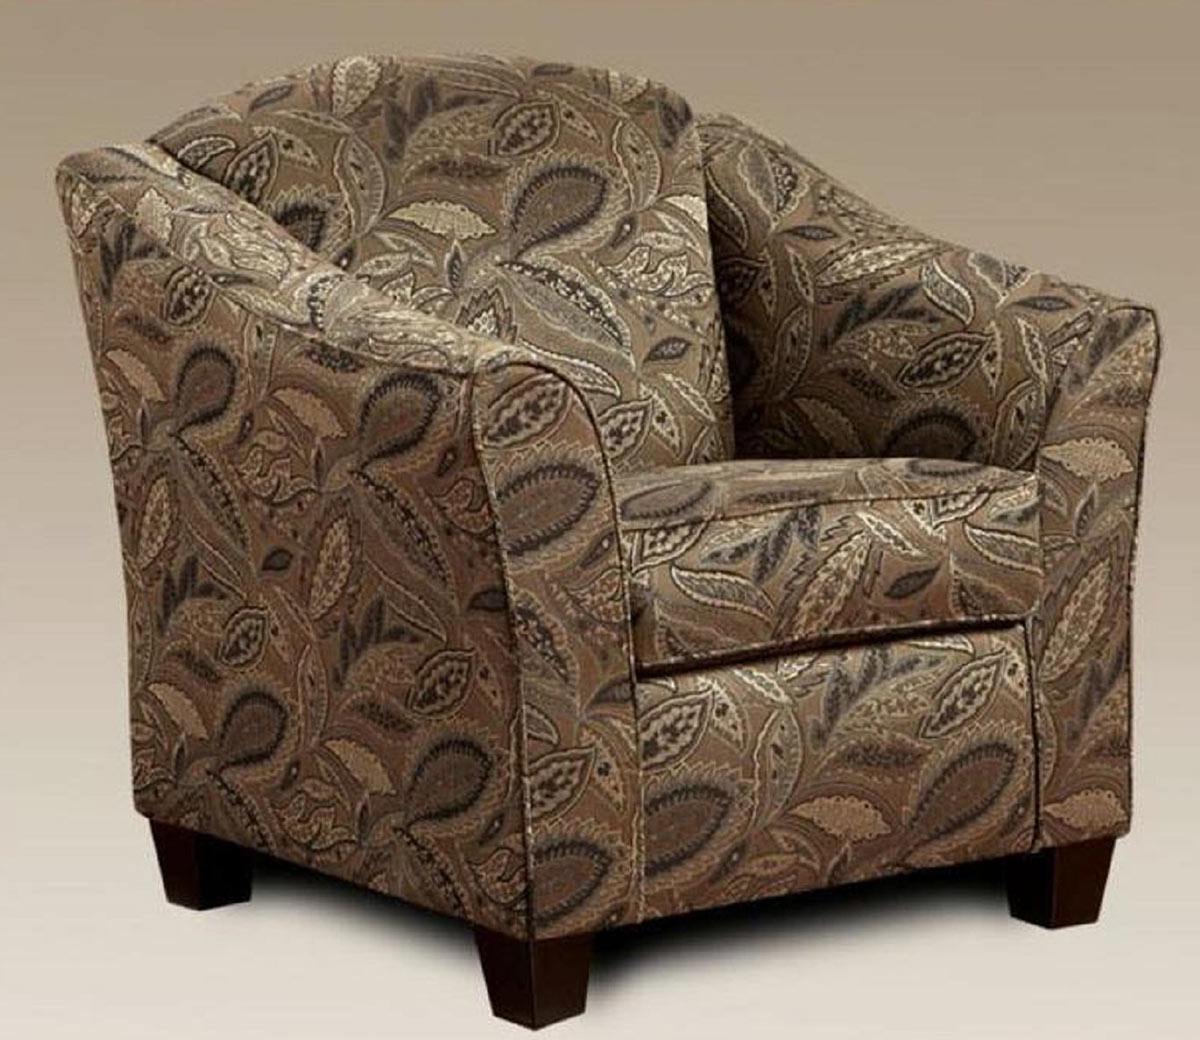 Chelsea Home Lilly Accent Chair - Dream Java